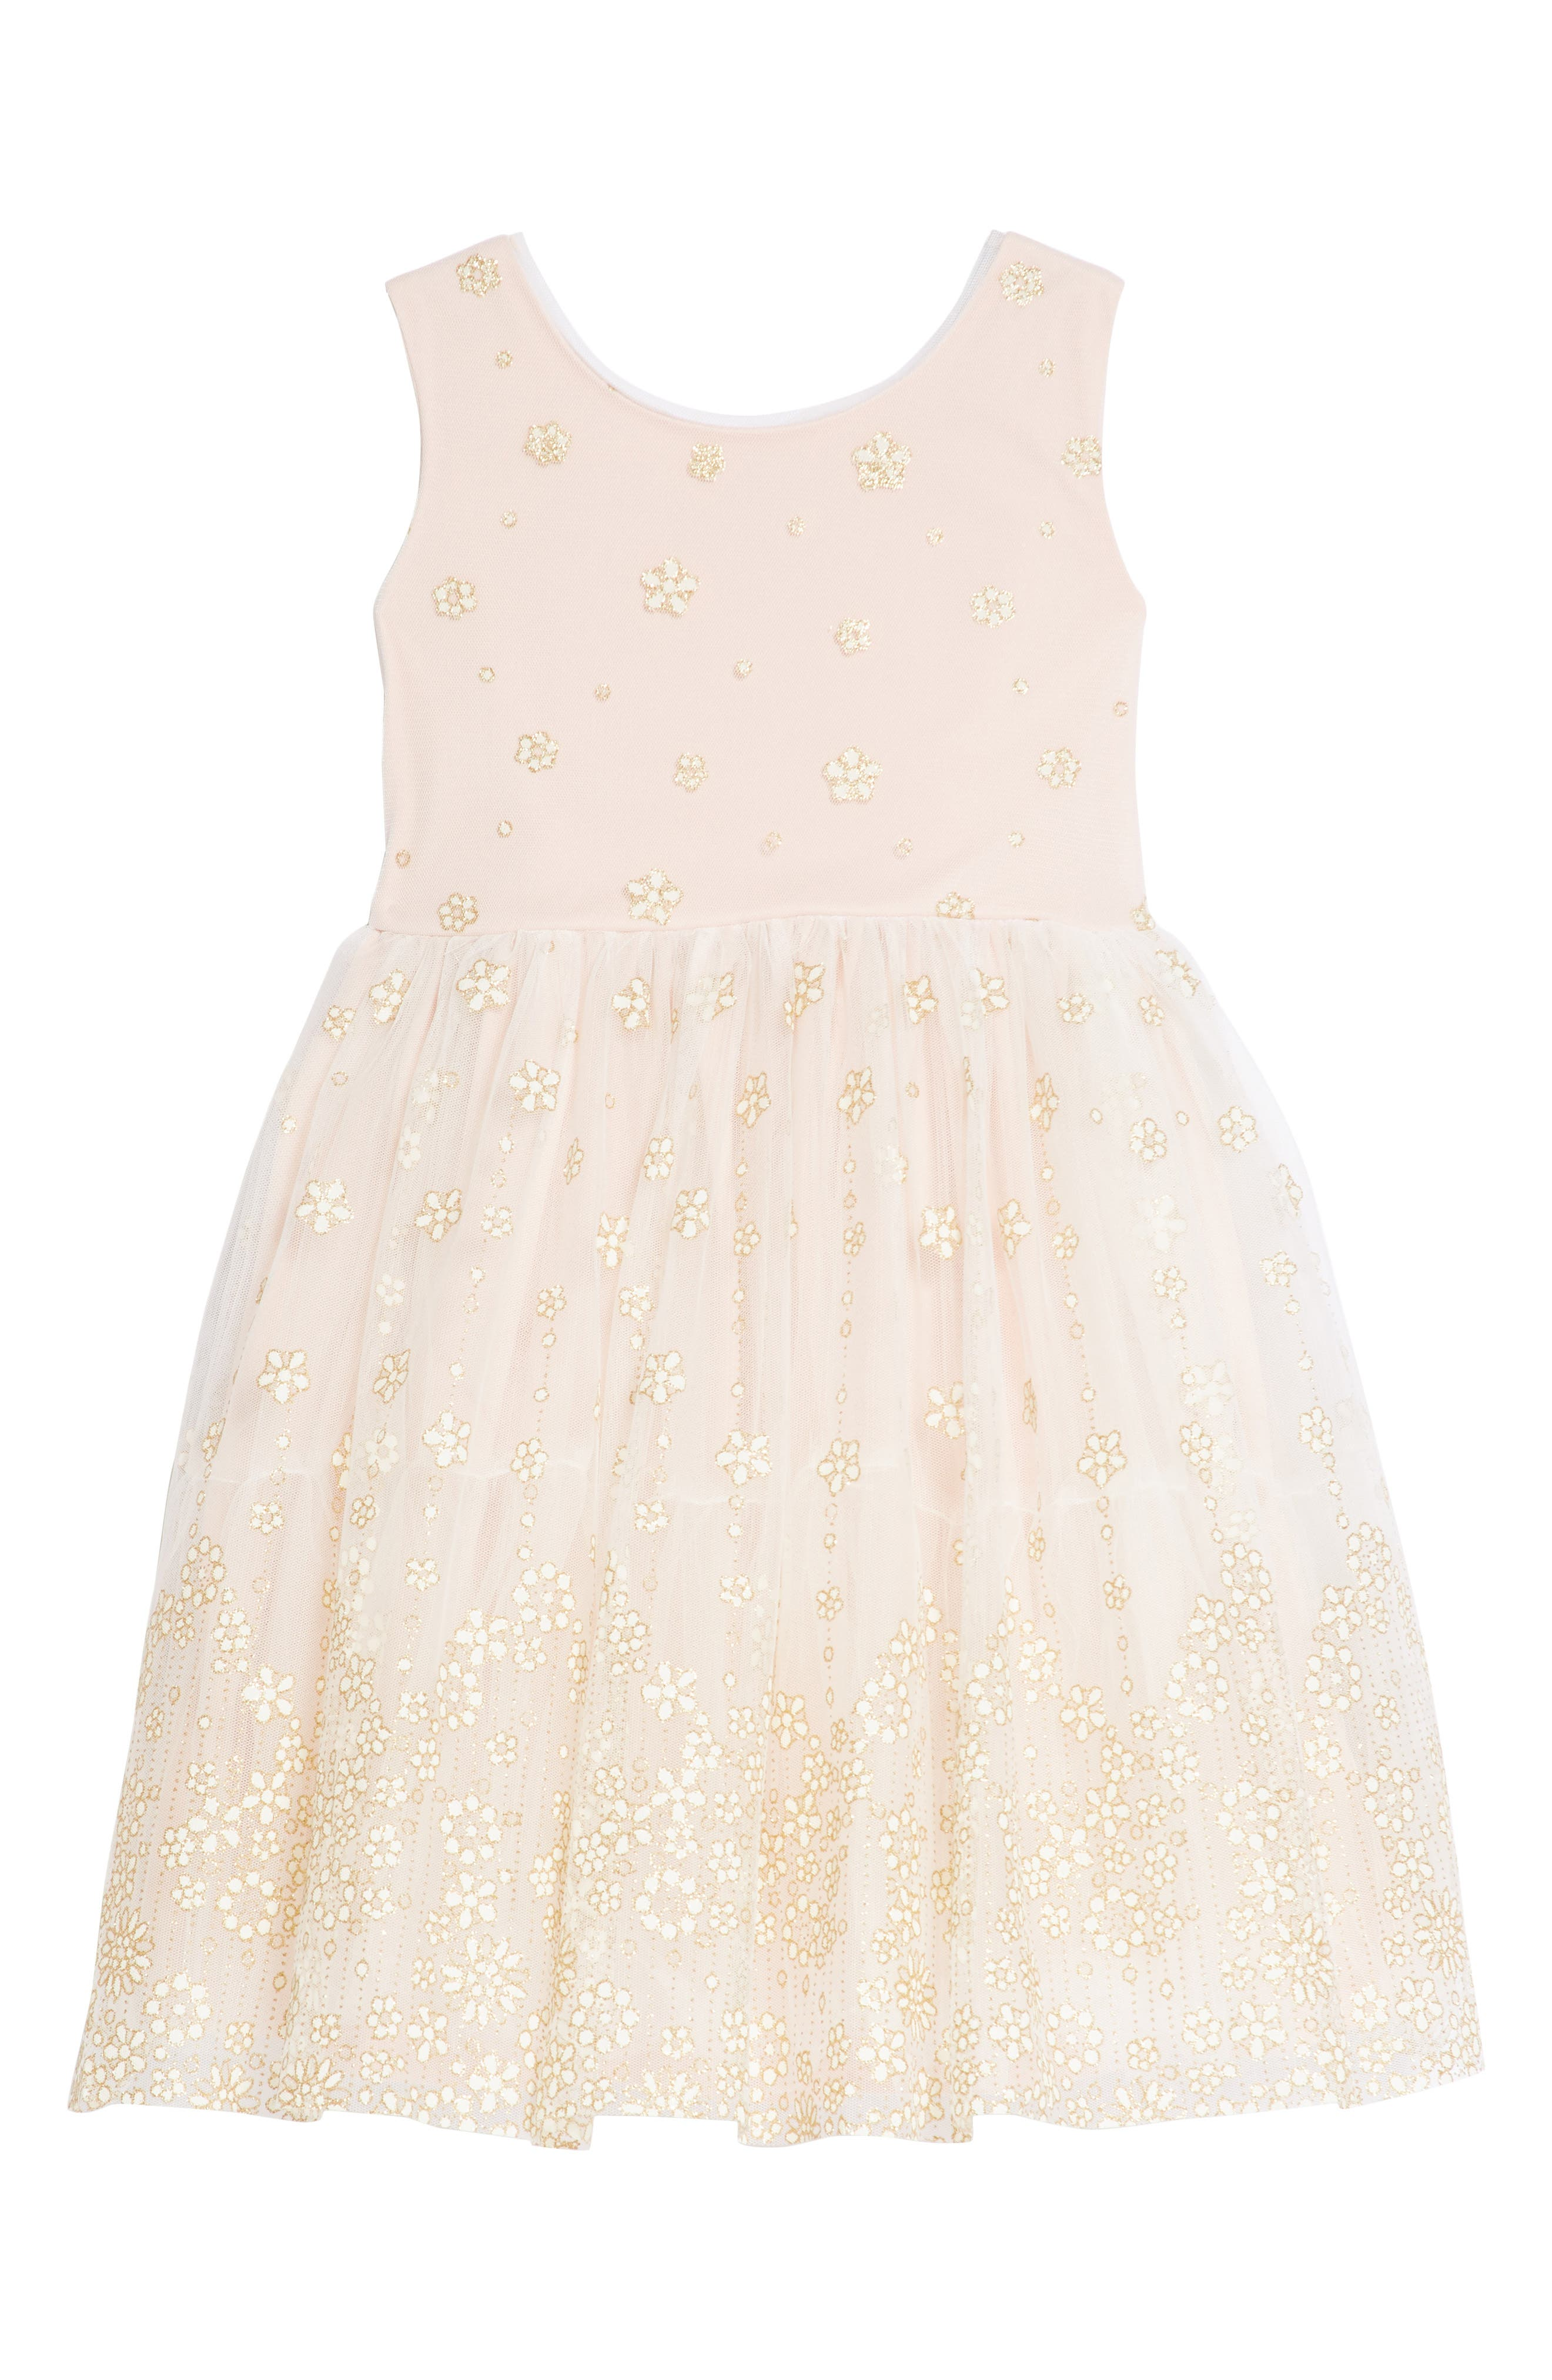 Glitter Mesh Tulle Dress,                             Main thumbnail 1, color,                             Ivory/ Pink